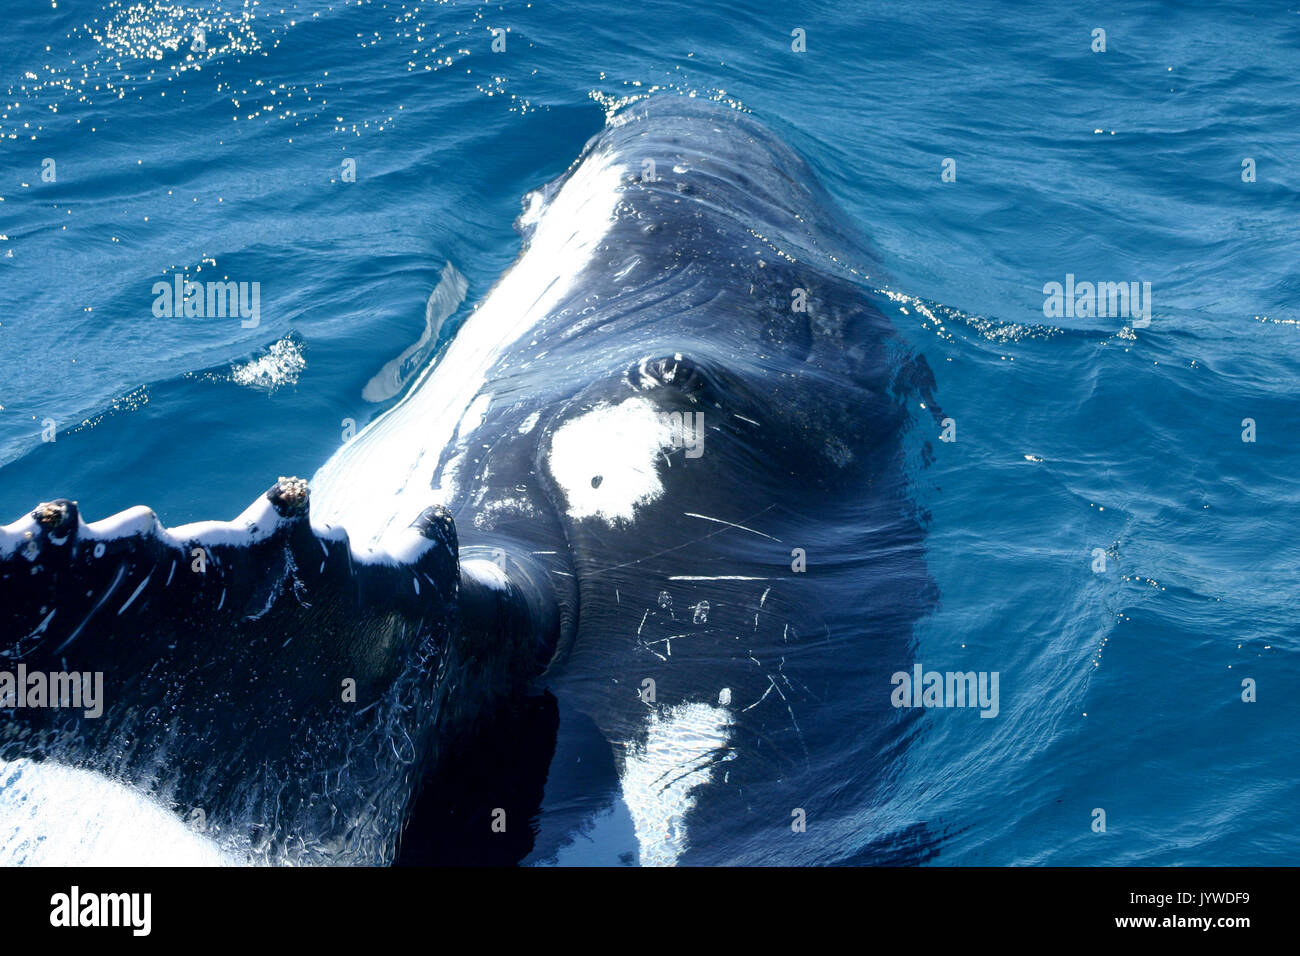 Close-up encounter with a curious Humpback Whale (Megaptera novaeangliae) at Hervey Bay, Australia. Photo series Stock Photo